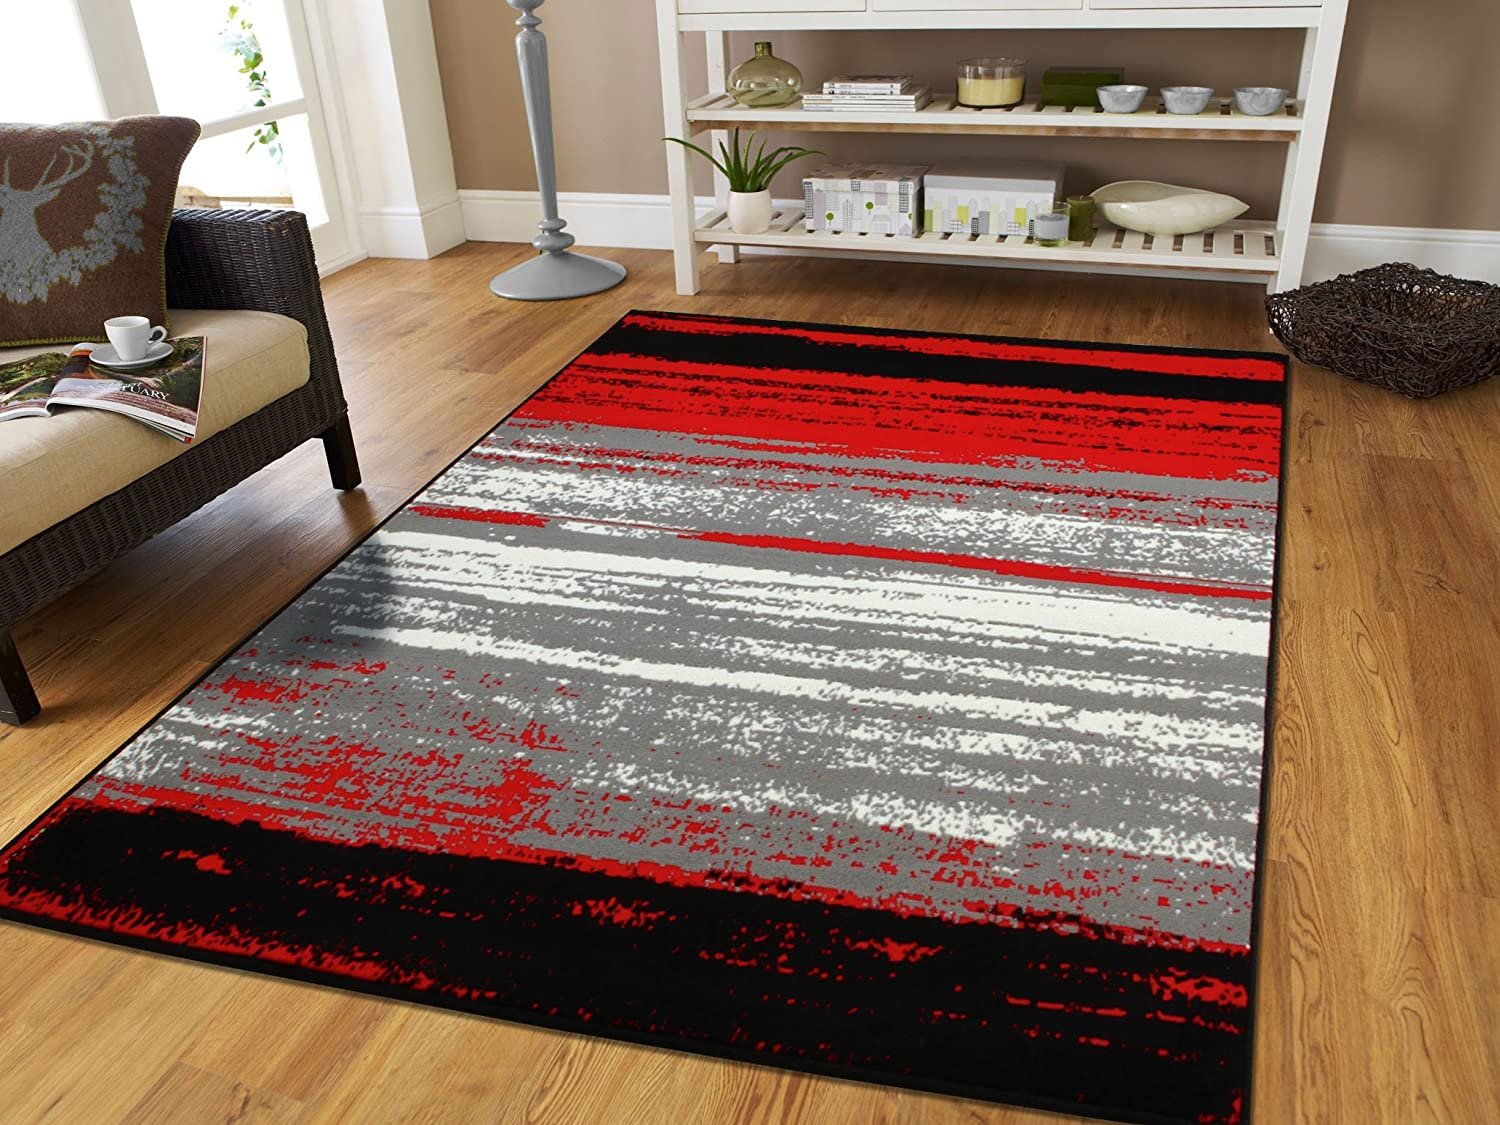 Amazon.com: Red Contemporary Rugs For Living Room Bathroom Entery Carpet  Reds Black Grey White 2x3 Carpets For Bedrooms Clearance, 2x3 Rug: Kitchen  U0026 Dining